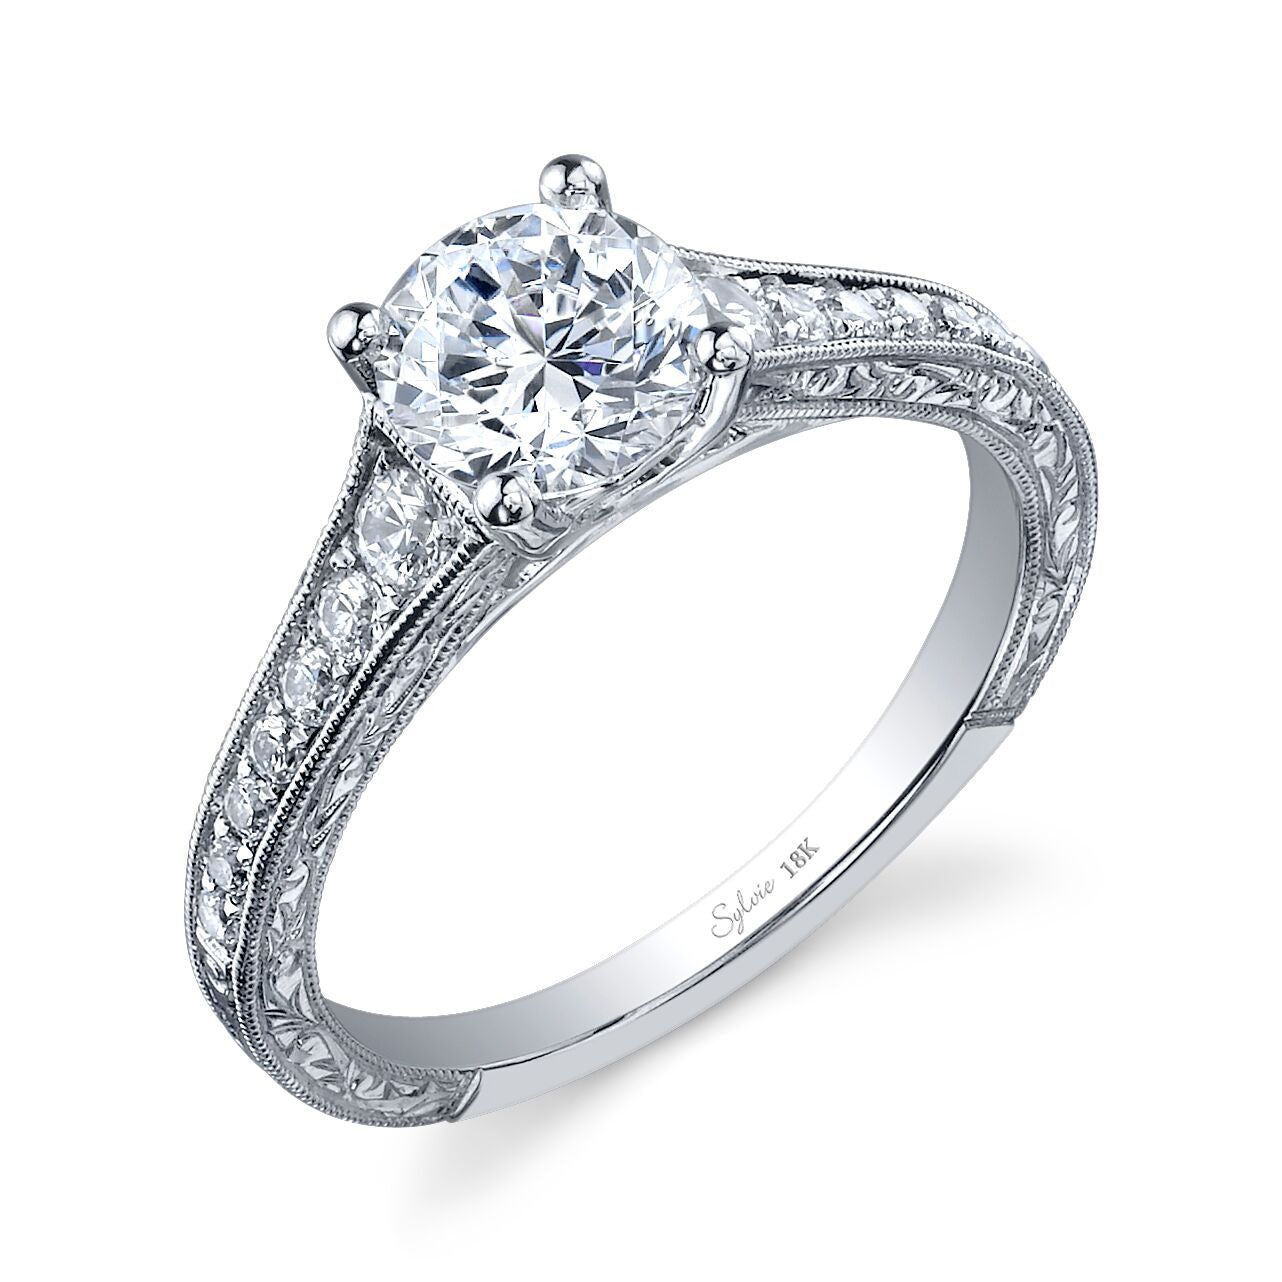 Vintage-Inspired Engraved Diamond Engagement Ring